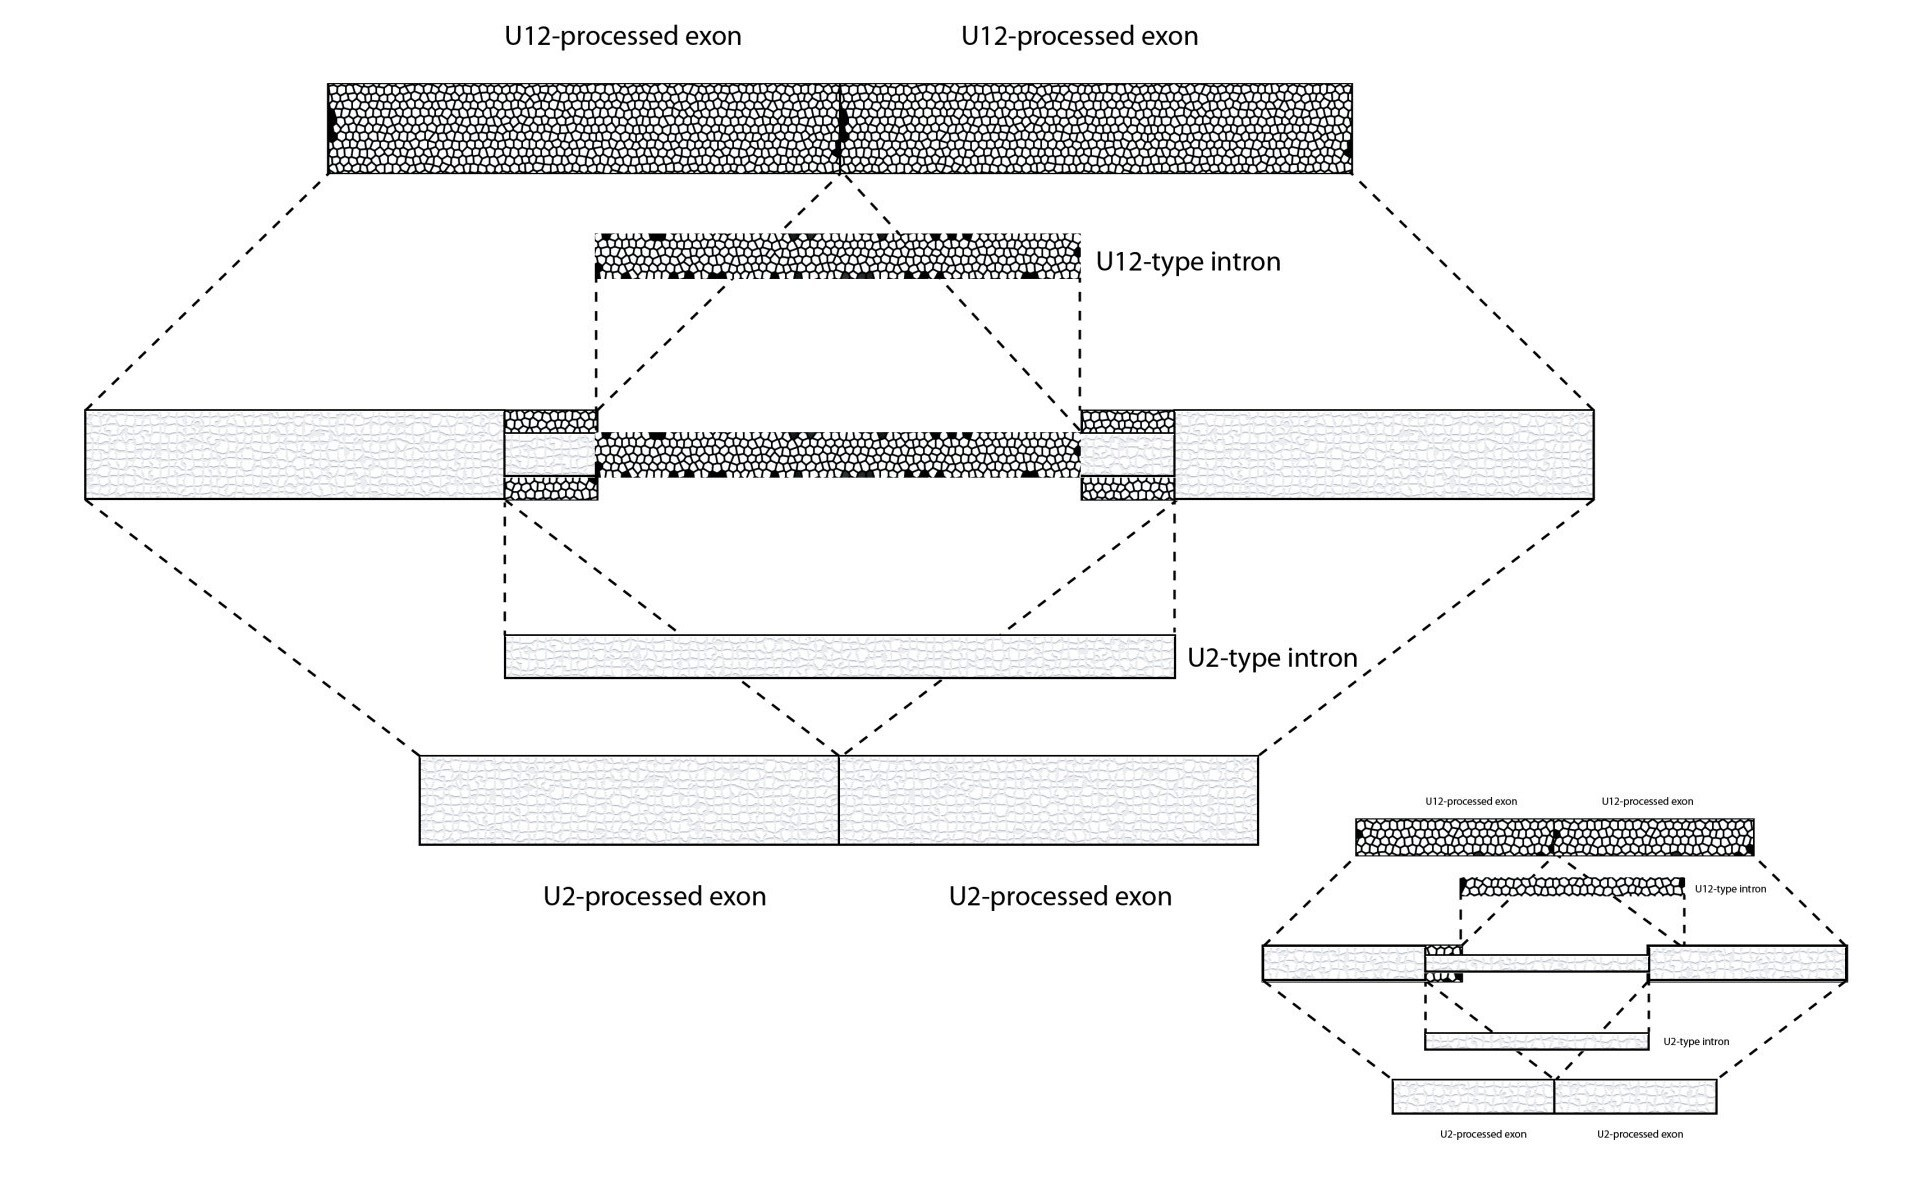 http://static-content.springer.com/image/art%3A10.1186%2F1745-6150-8-4/MediaObjects/13062_2012_365_Fig1_HTML.jpg